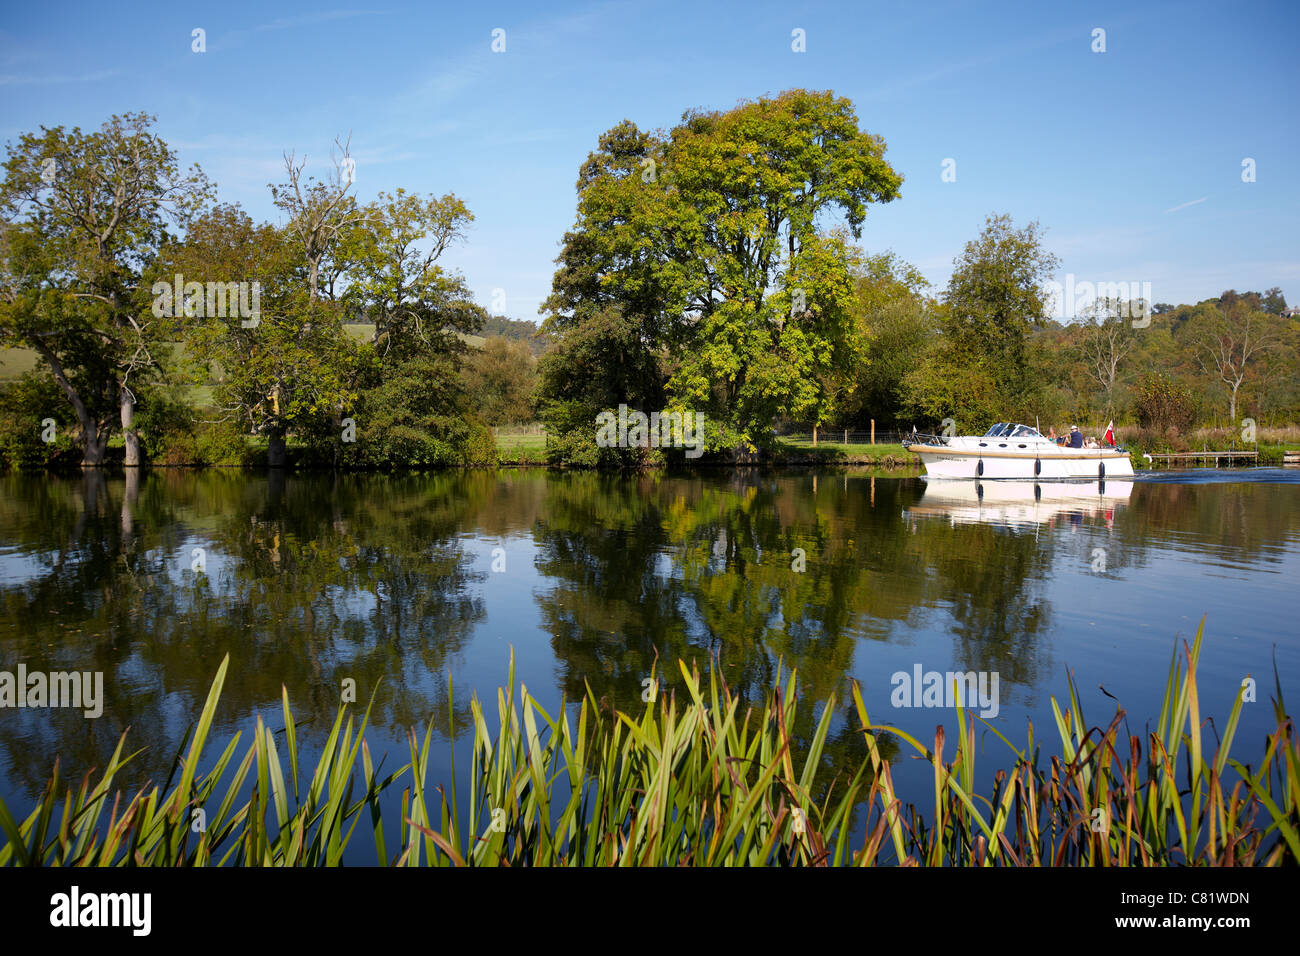 A boat, Cuchulain III, sailing on the River Thames, near Pangbourne, Reading, Berkshire. - Stock Image